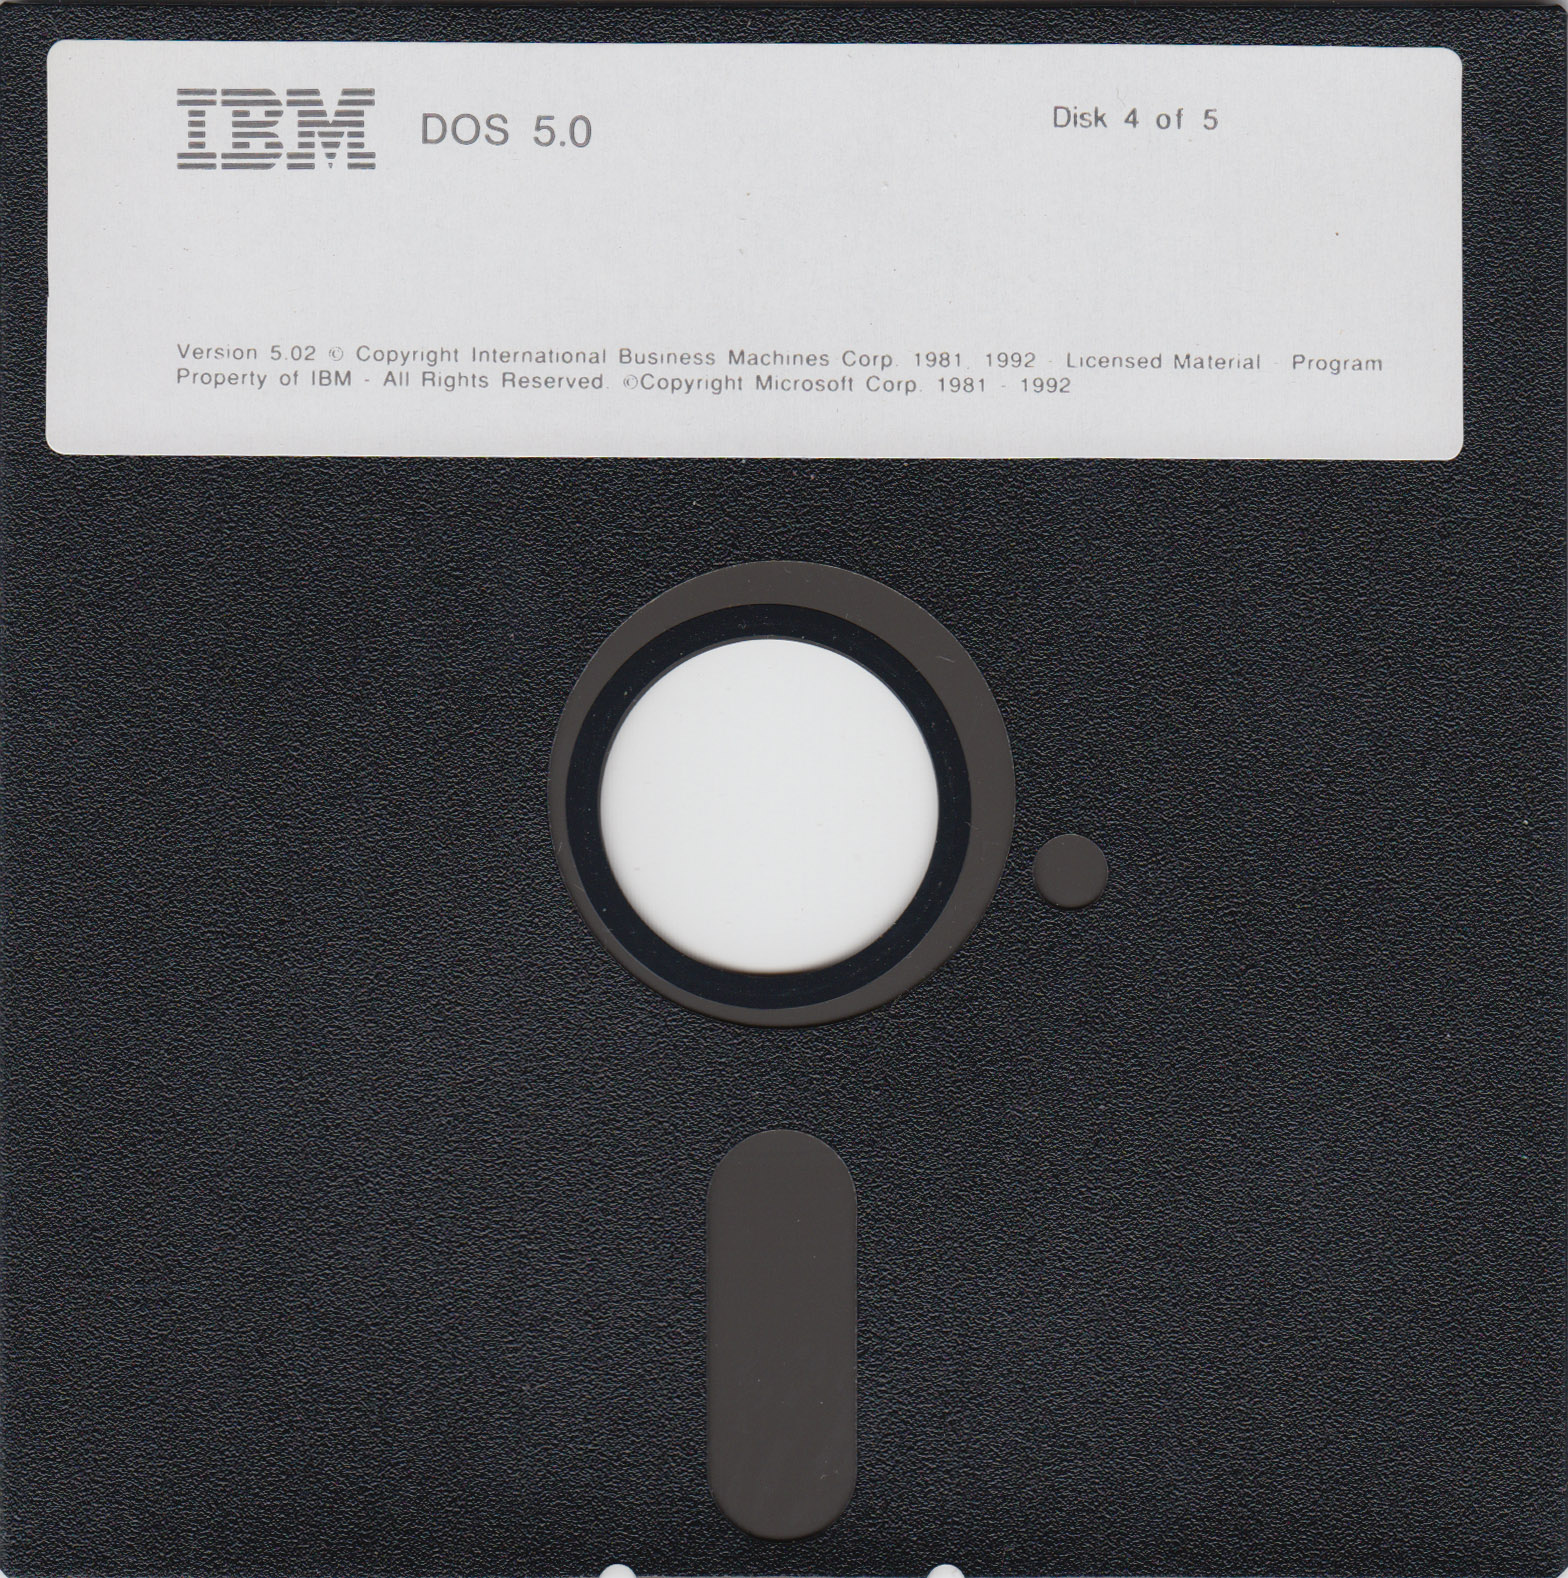 how to delete disk in dos